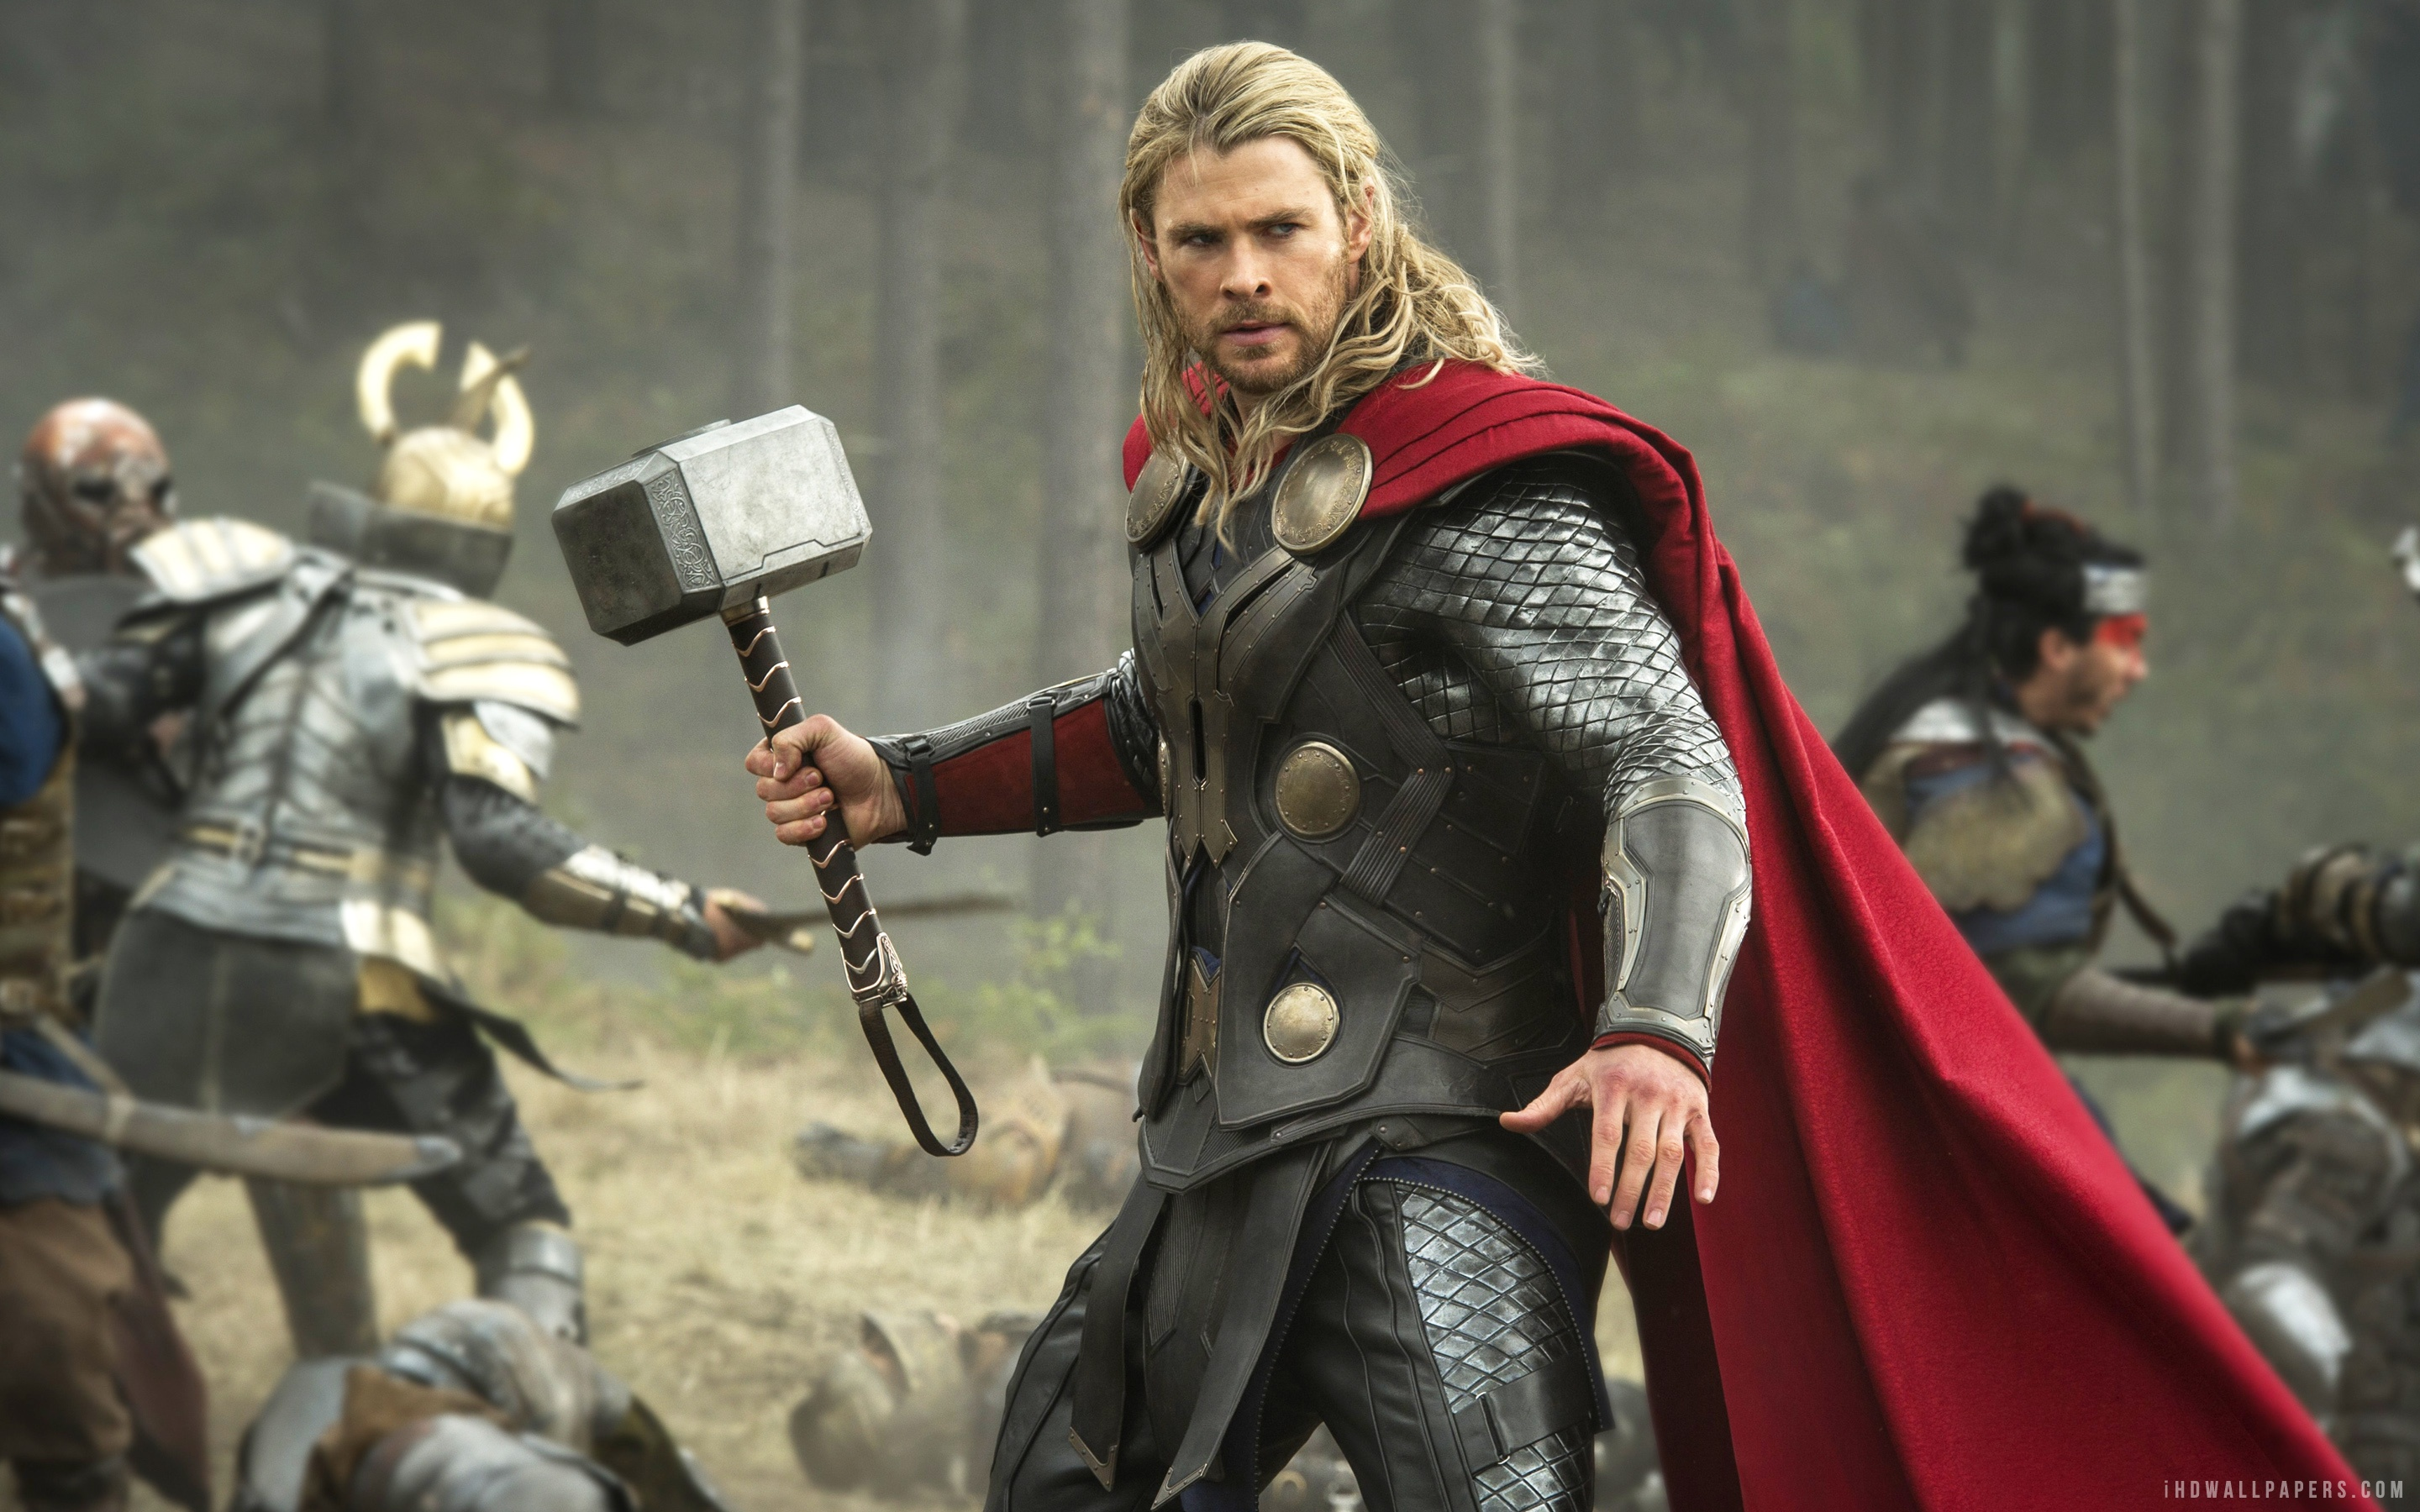 https://i2.wp.com/www.beliefnet.com/columnists//moviemom/files/2013/11/Thor-The-Dark-World-Movie-2013-Review-Official-Trailer-Release-Date-1.jpg